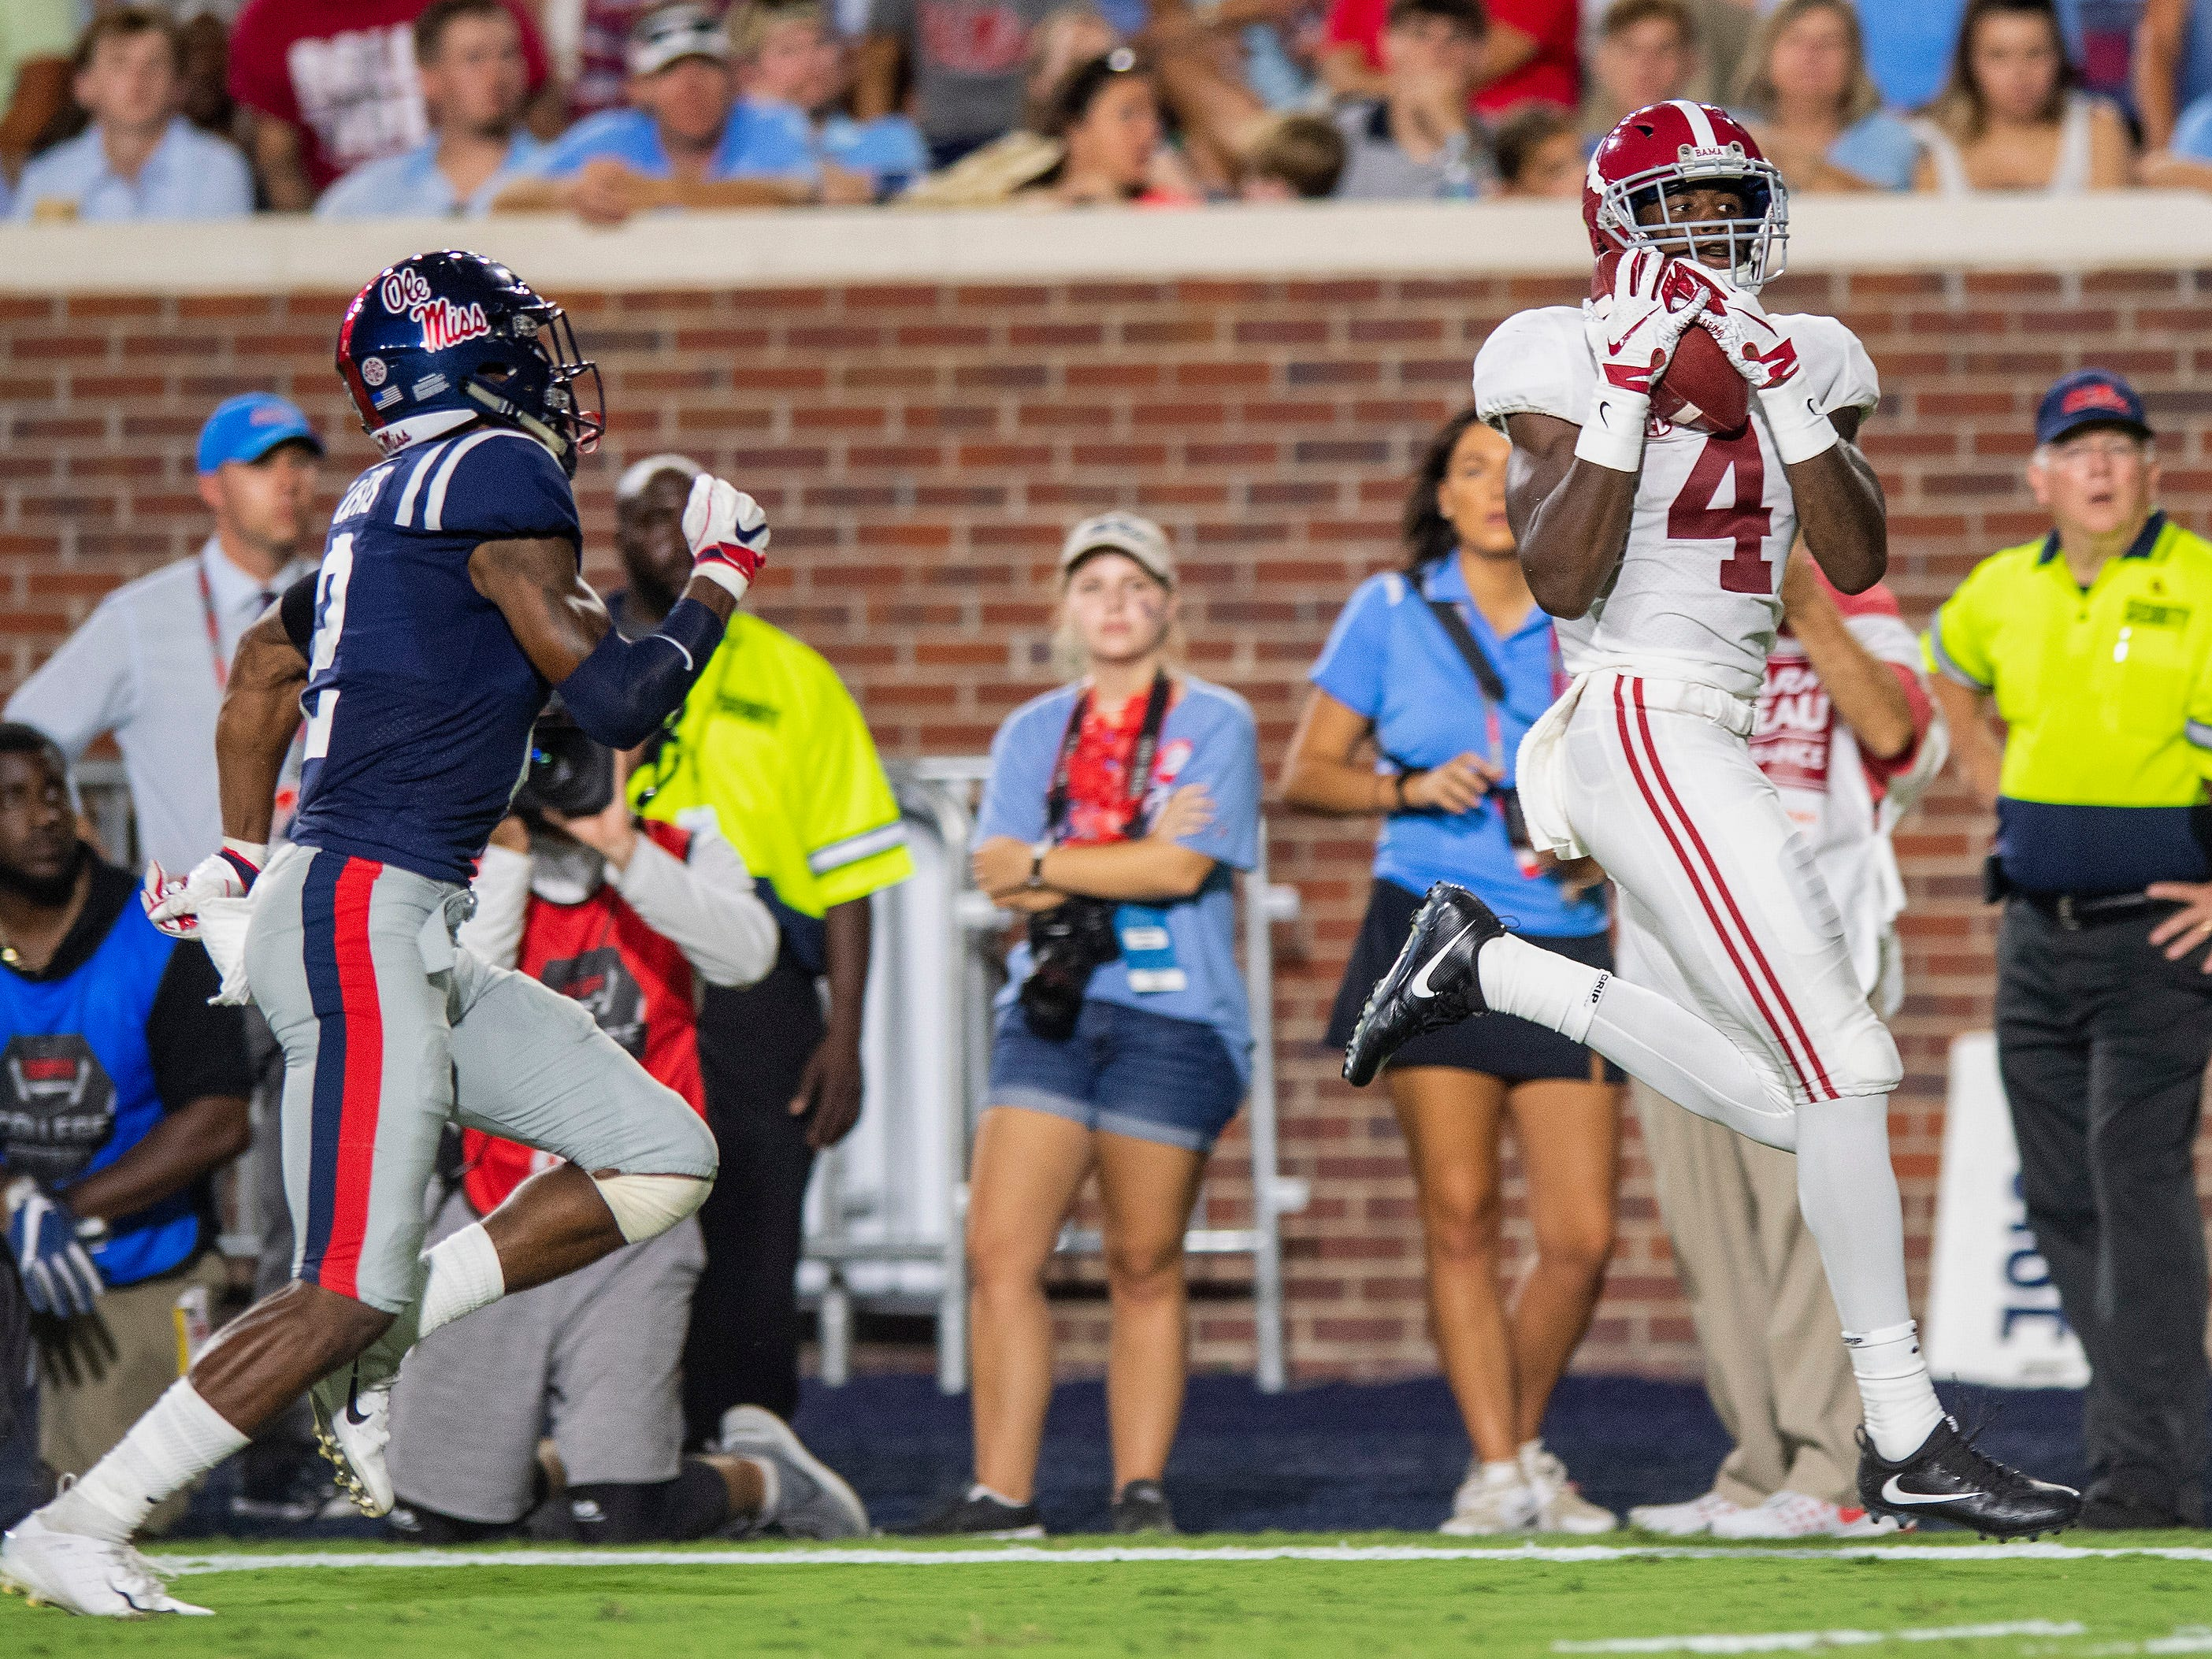 Alabama wide receiver Jerry Jeudy (4) catyches a pass against Ole Miss defensive back Montrell Custis (2) in first half action in Oxford, Ms., on Saturday September 15, 2018.